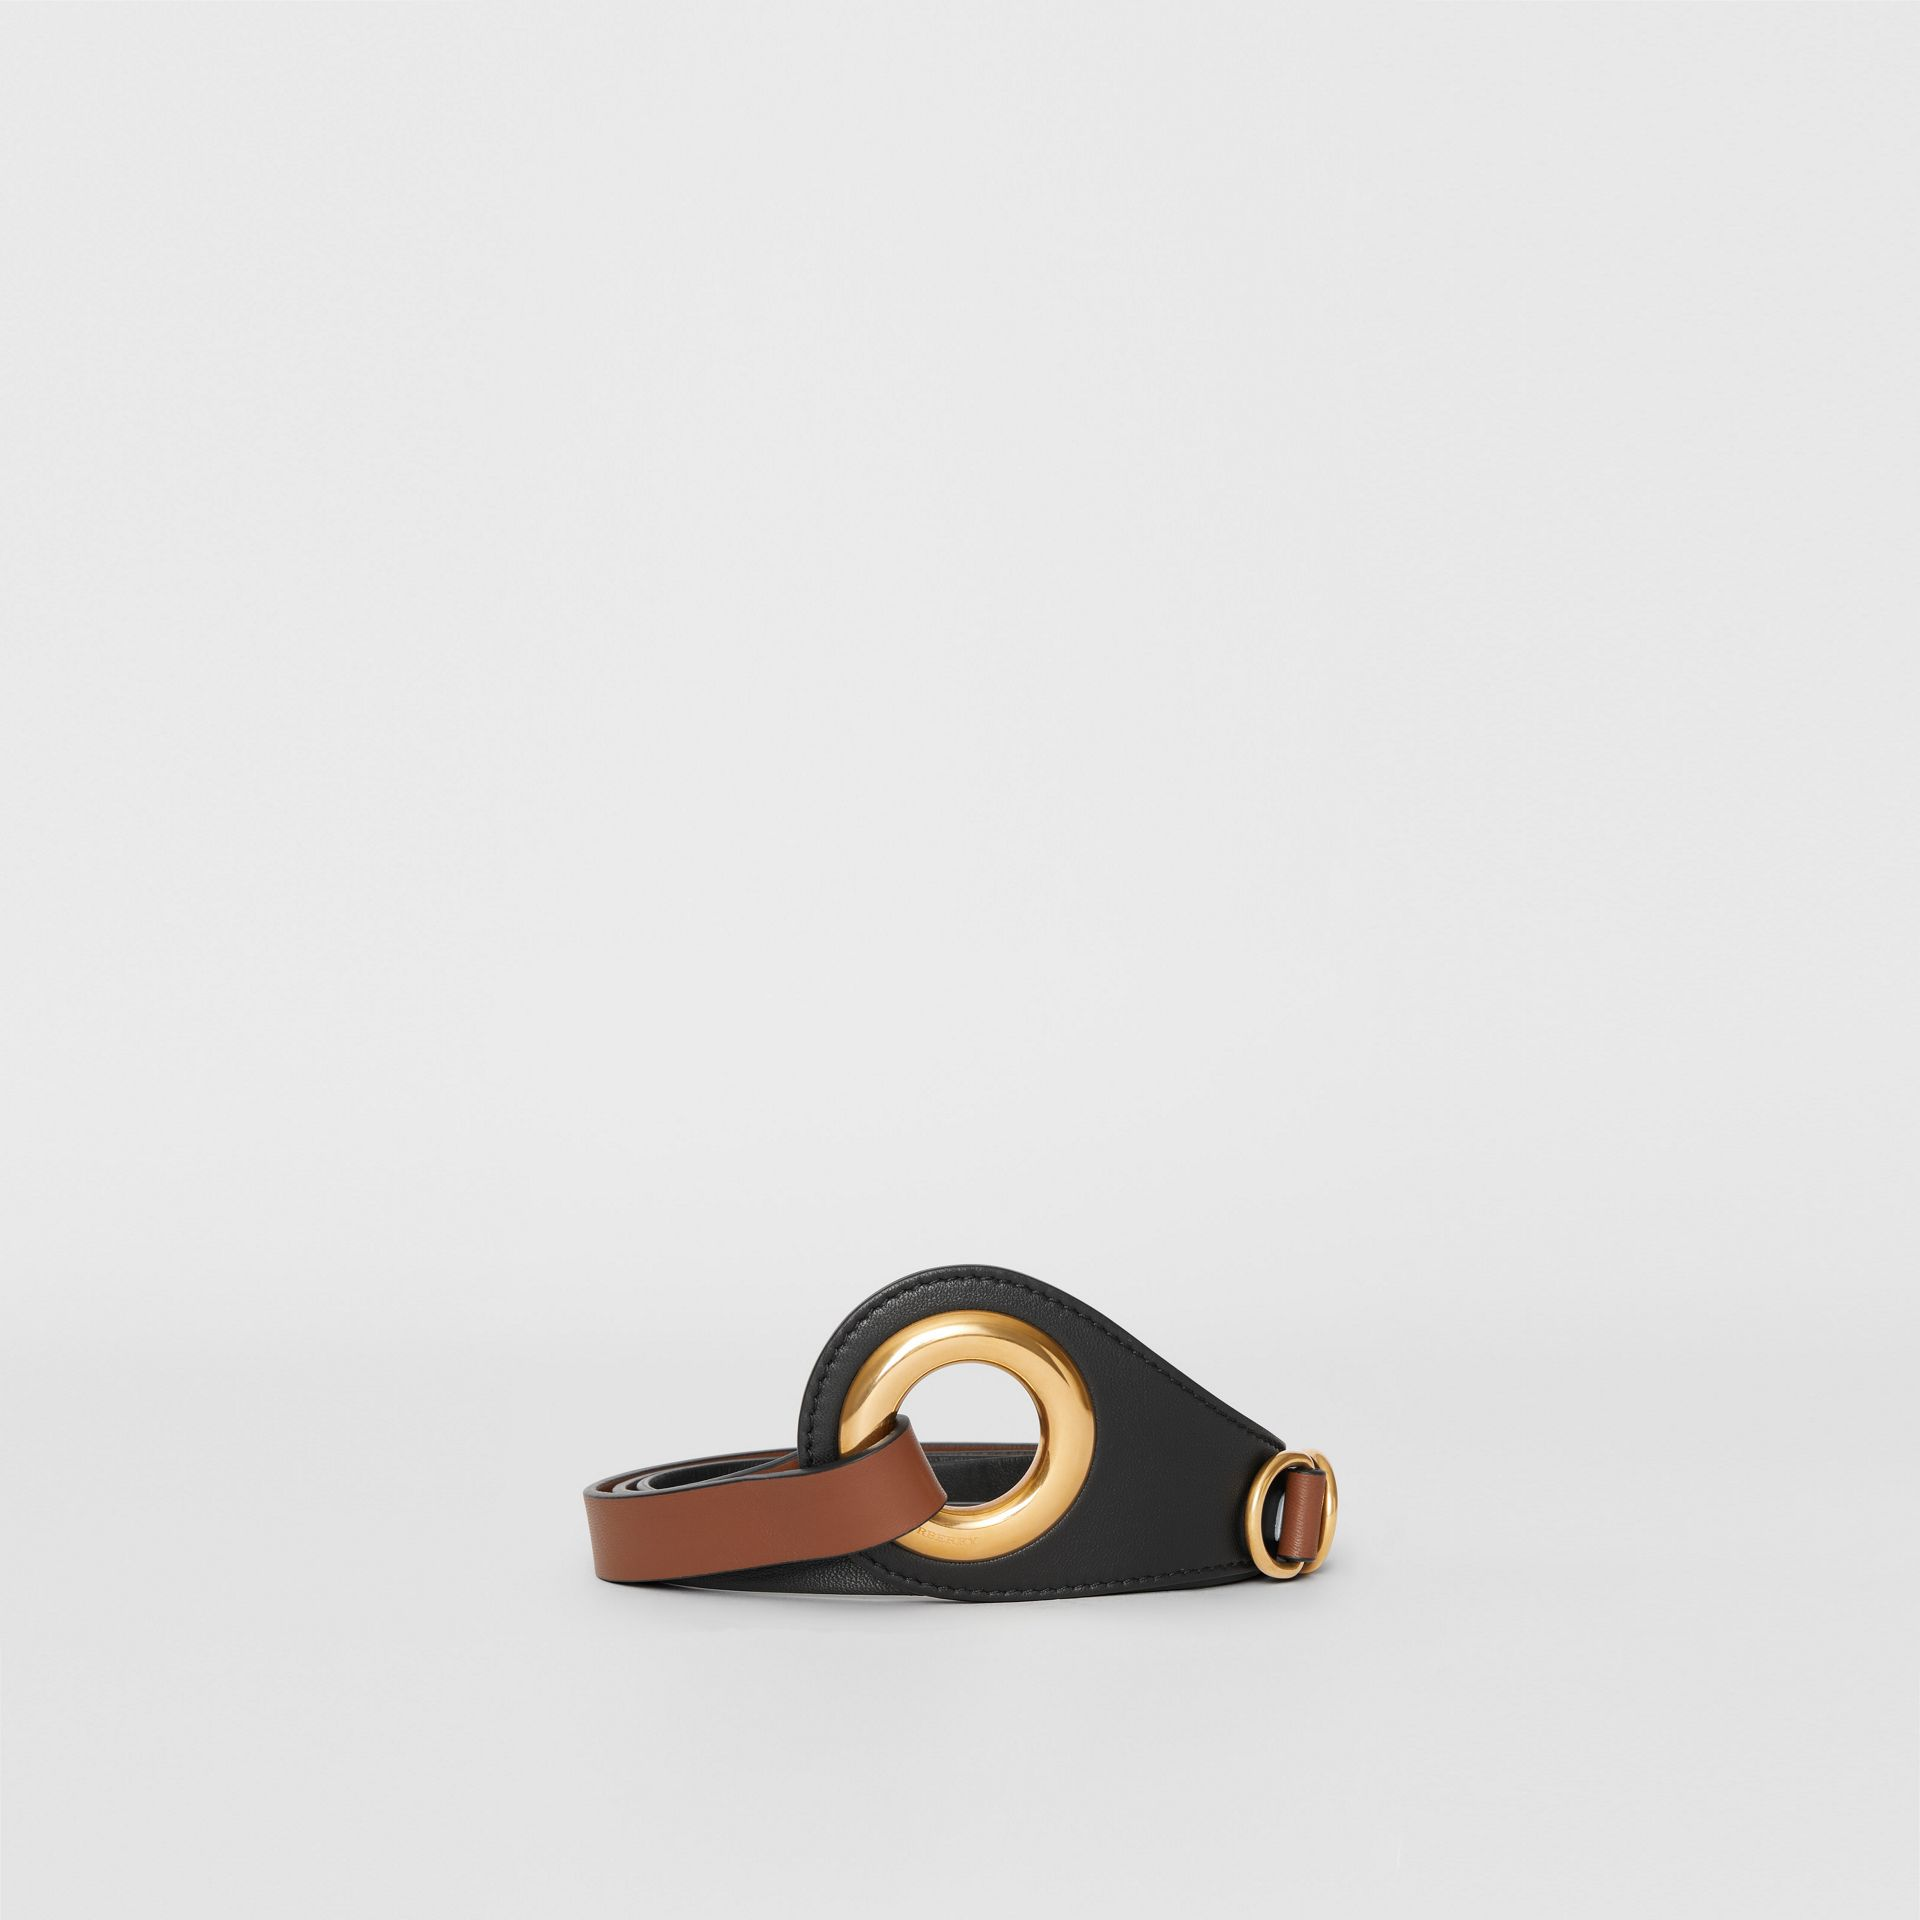 Grommet Detail Lambskin Waist Belt in Tan/black - Women | Burberry - gallery image 3